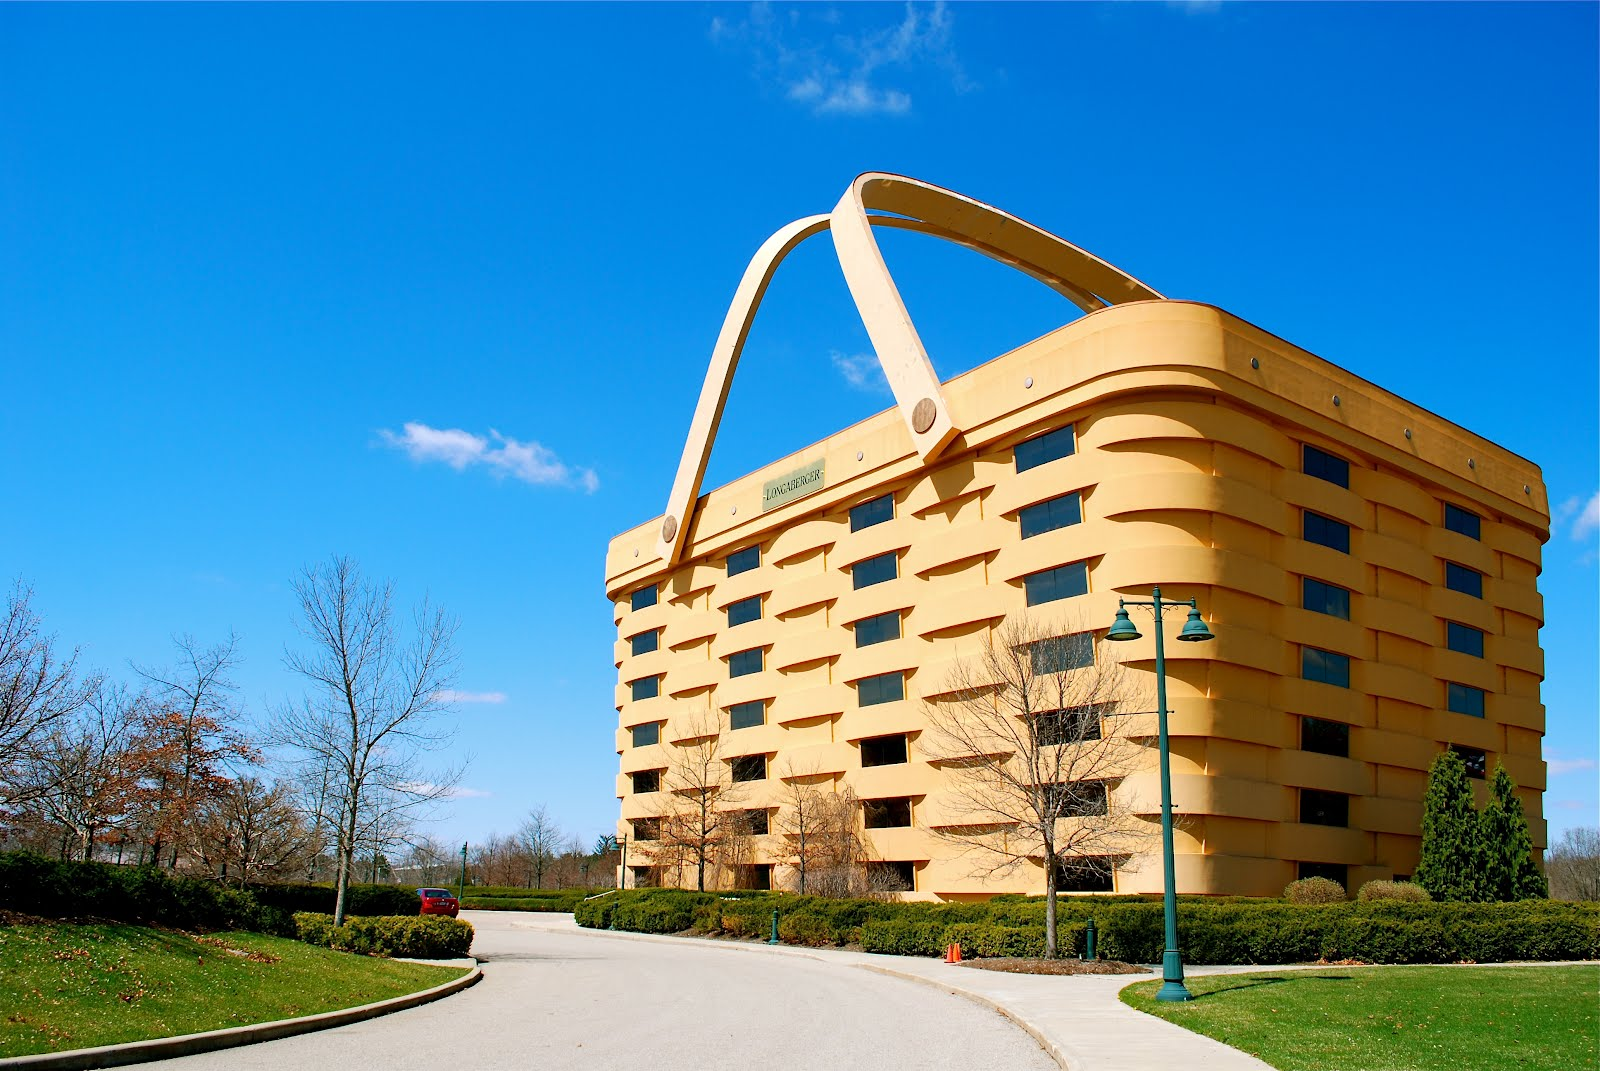 The Longaberger Basket Company Home Office, Located In Newark Ohio, Is A  180,000 Sq. Ft. Basket, Seven Stories In Height With 84 Windows.